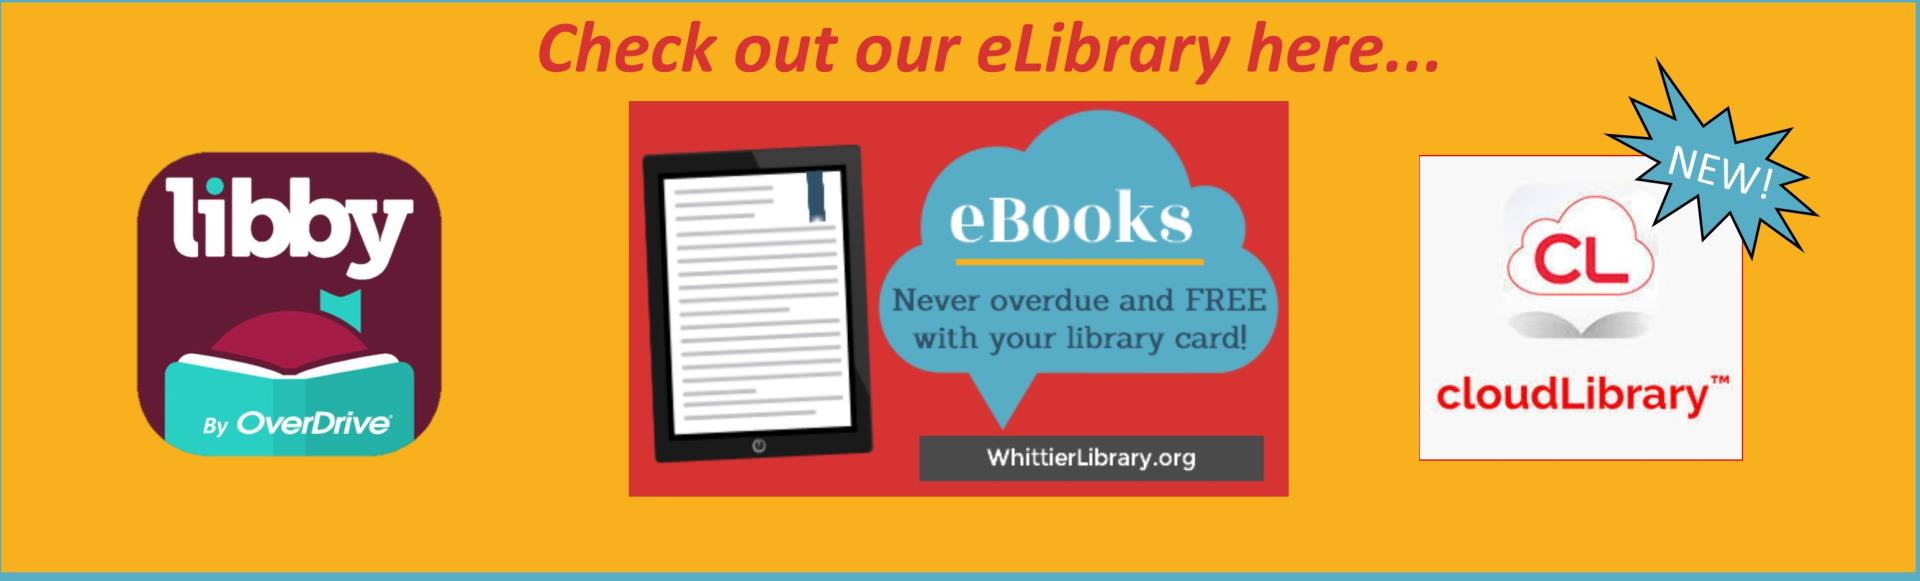 Libby logo and cloudLibrary logo check out our eBooks always available at WhittierLibrary.org